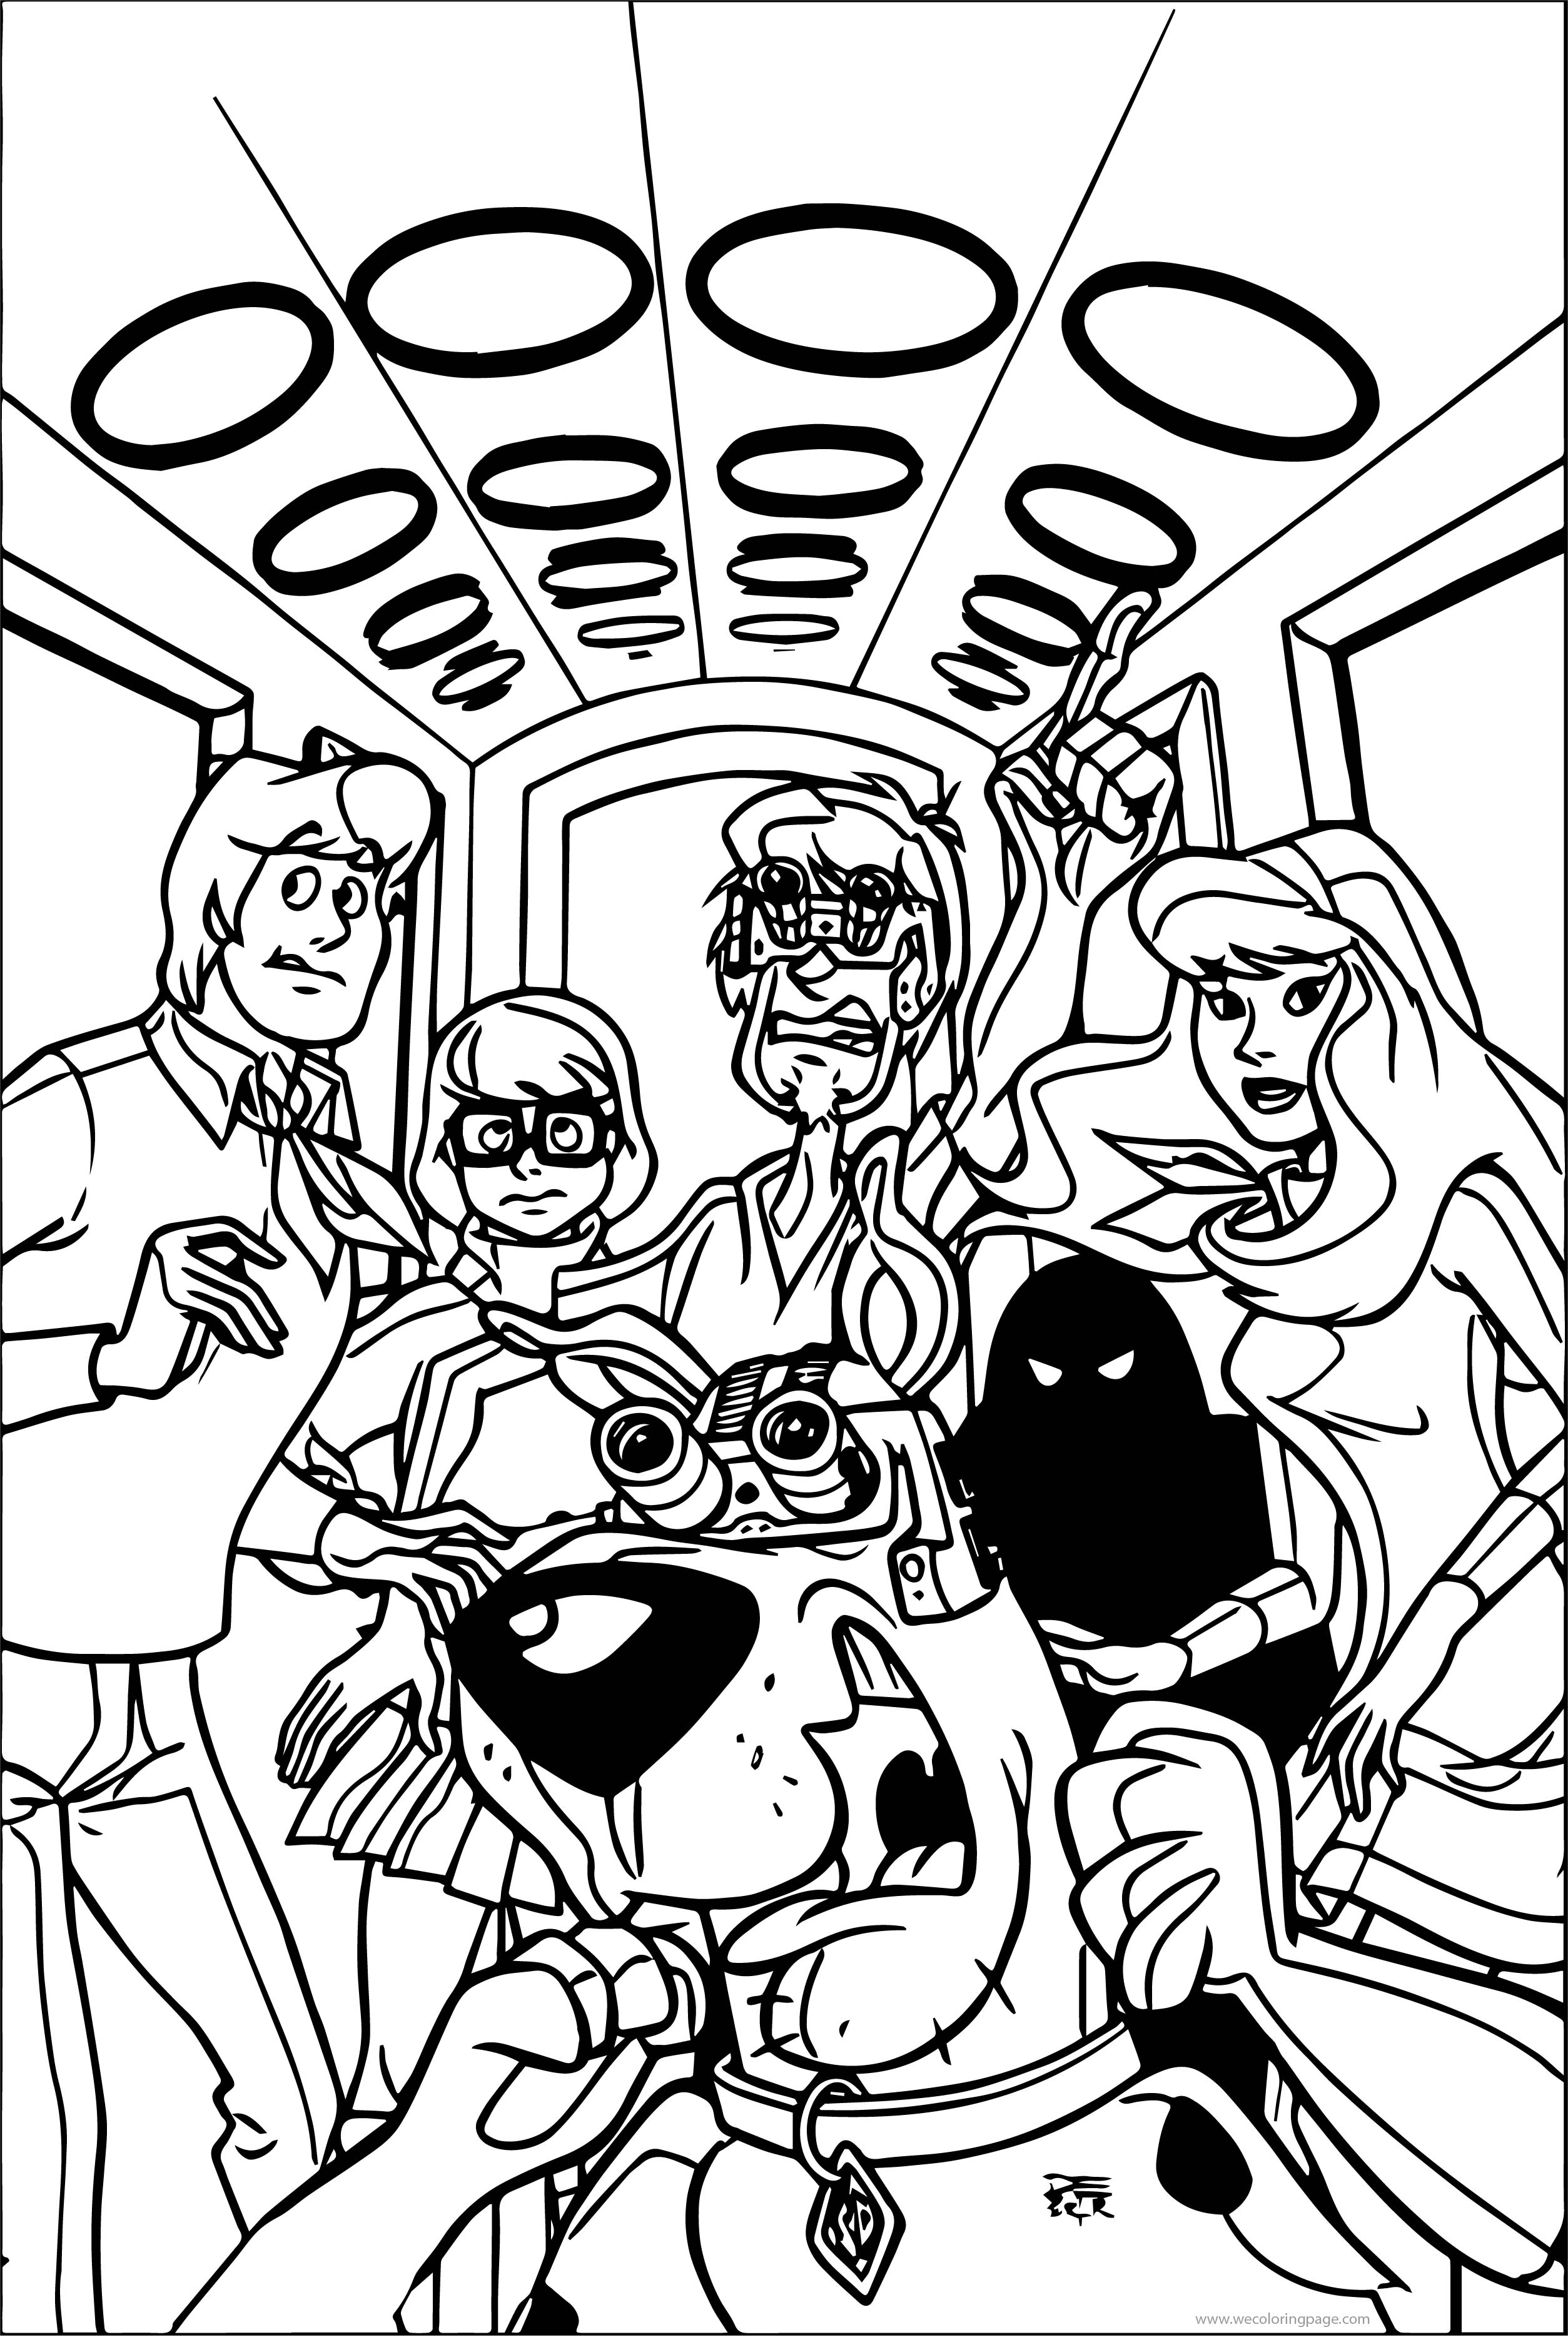 Scooby Doo (DC Comics) Textless Front Cover Coloring Page